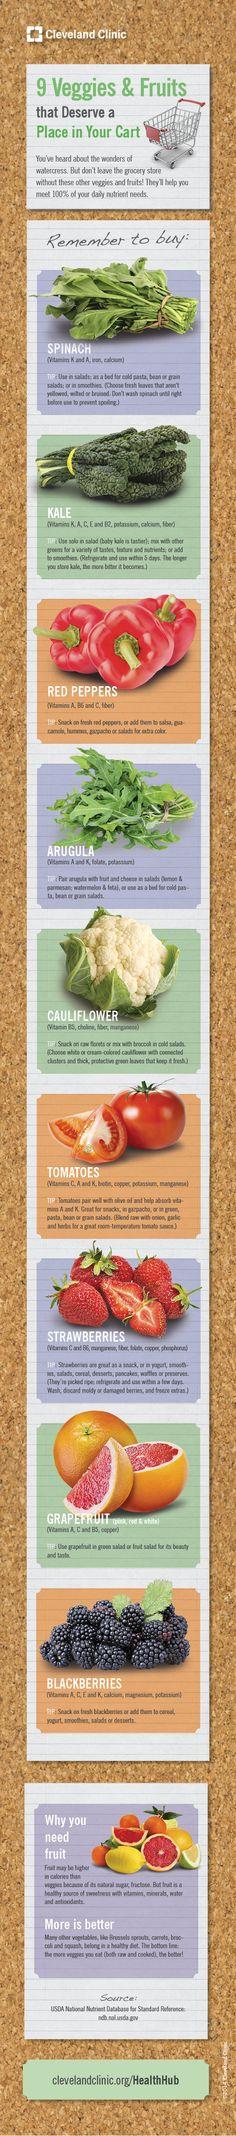 Don't leave the store without THESE 9 fruits and veggies. #grocery #shopping #infographic